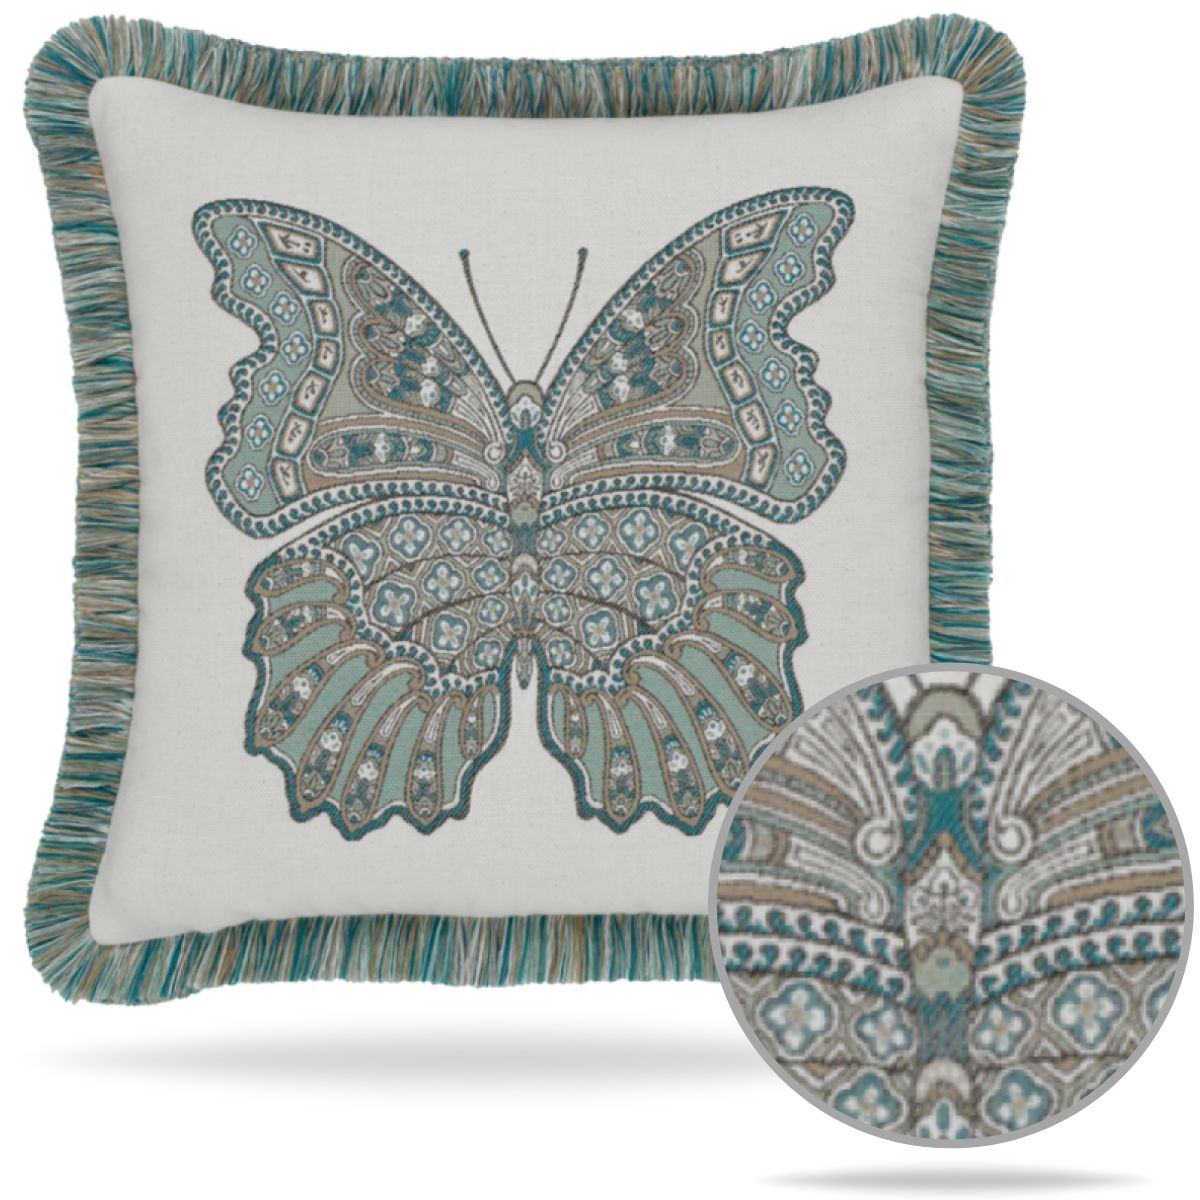 mariposa-lagoon-pillow from Elaine Smith